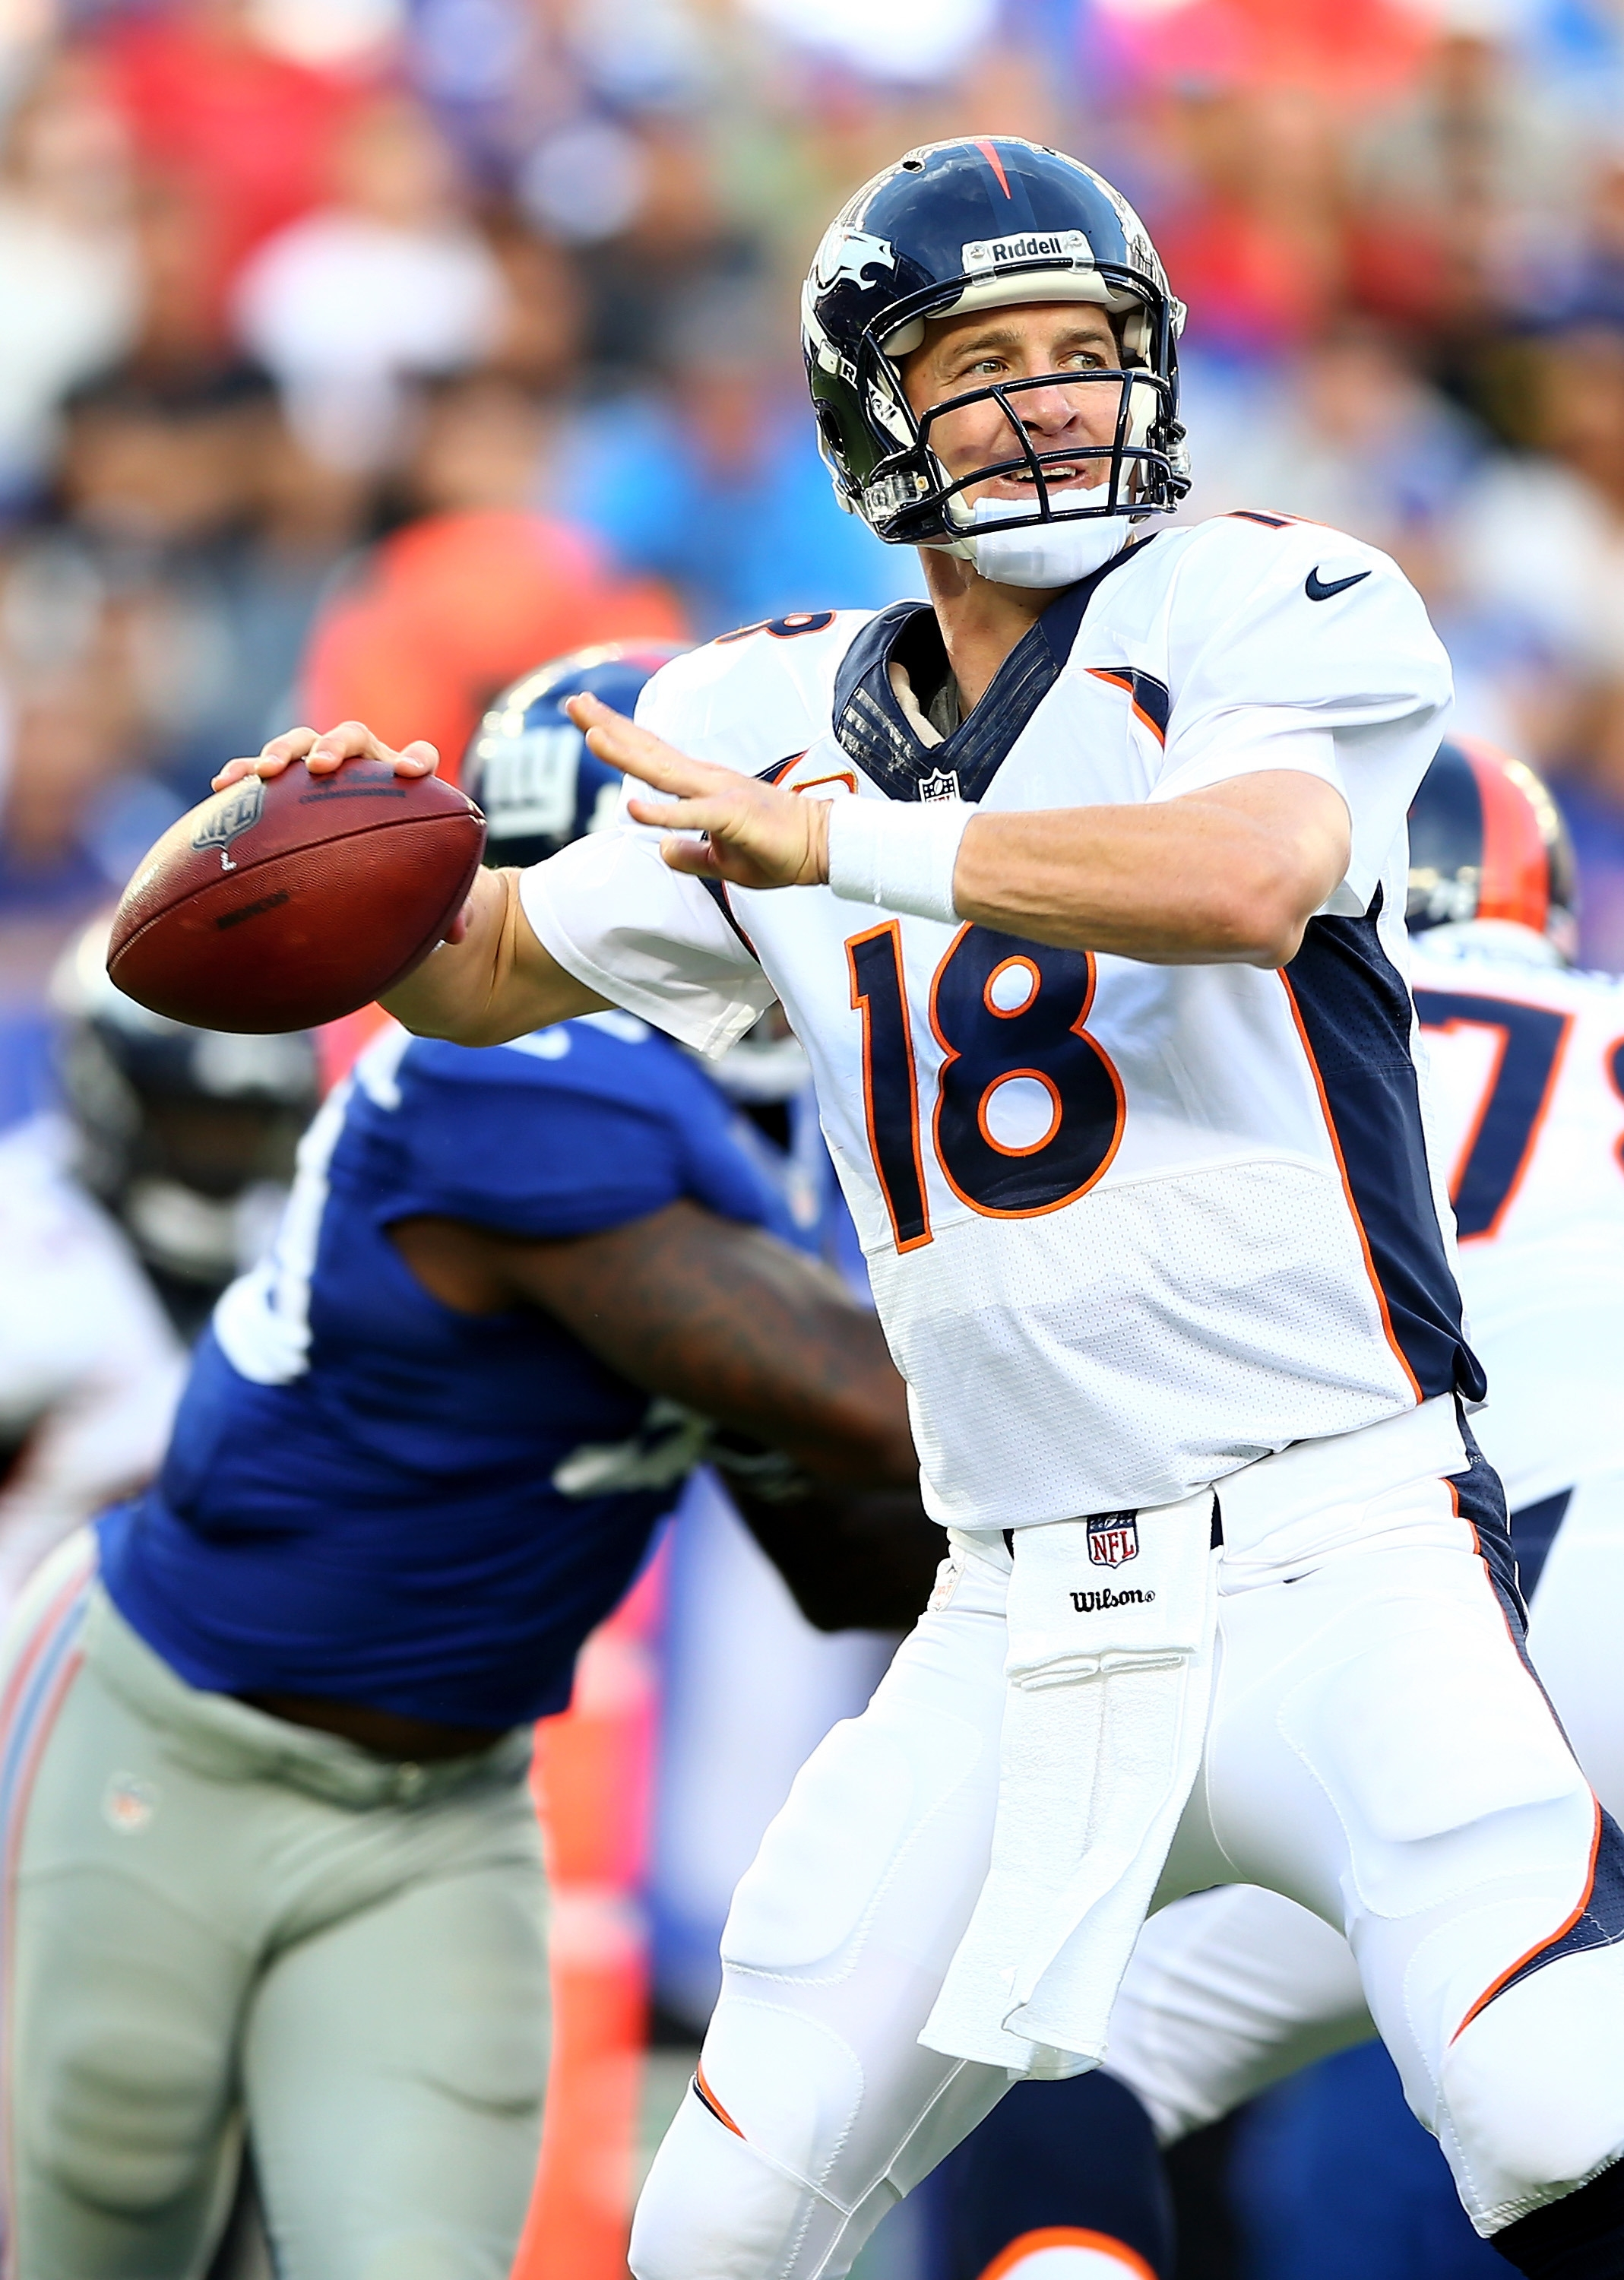 Peyton Manning leads the Broncos into Monday night's clash with the Raiders, the 17th time the teams will face each other on Monday Night Football.  (Photo by Elsa/Getty Images)